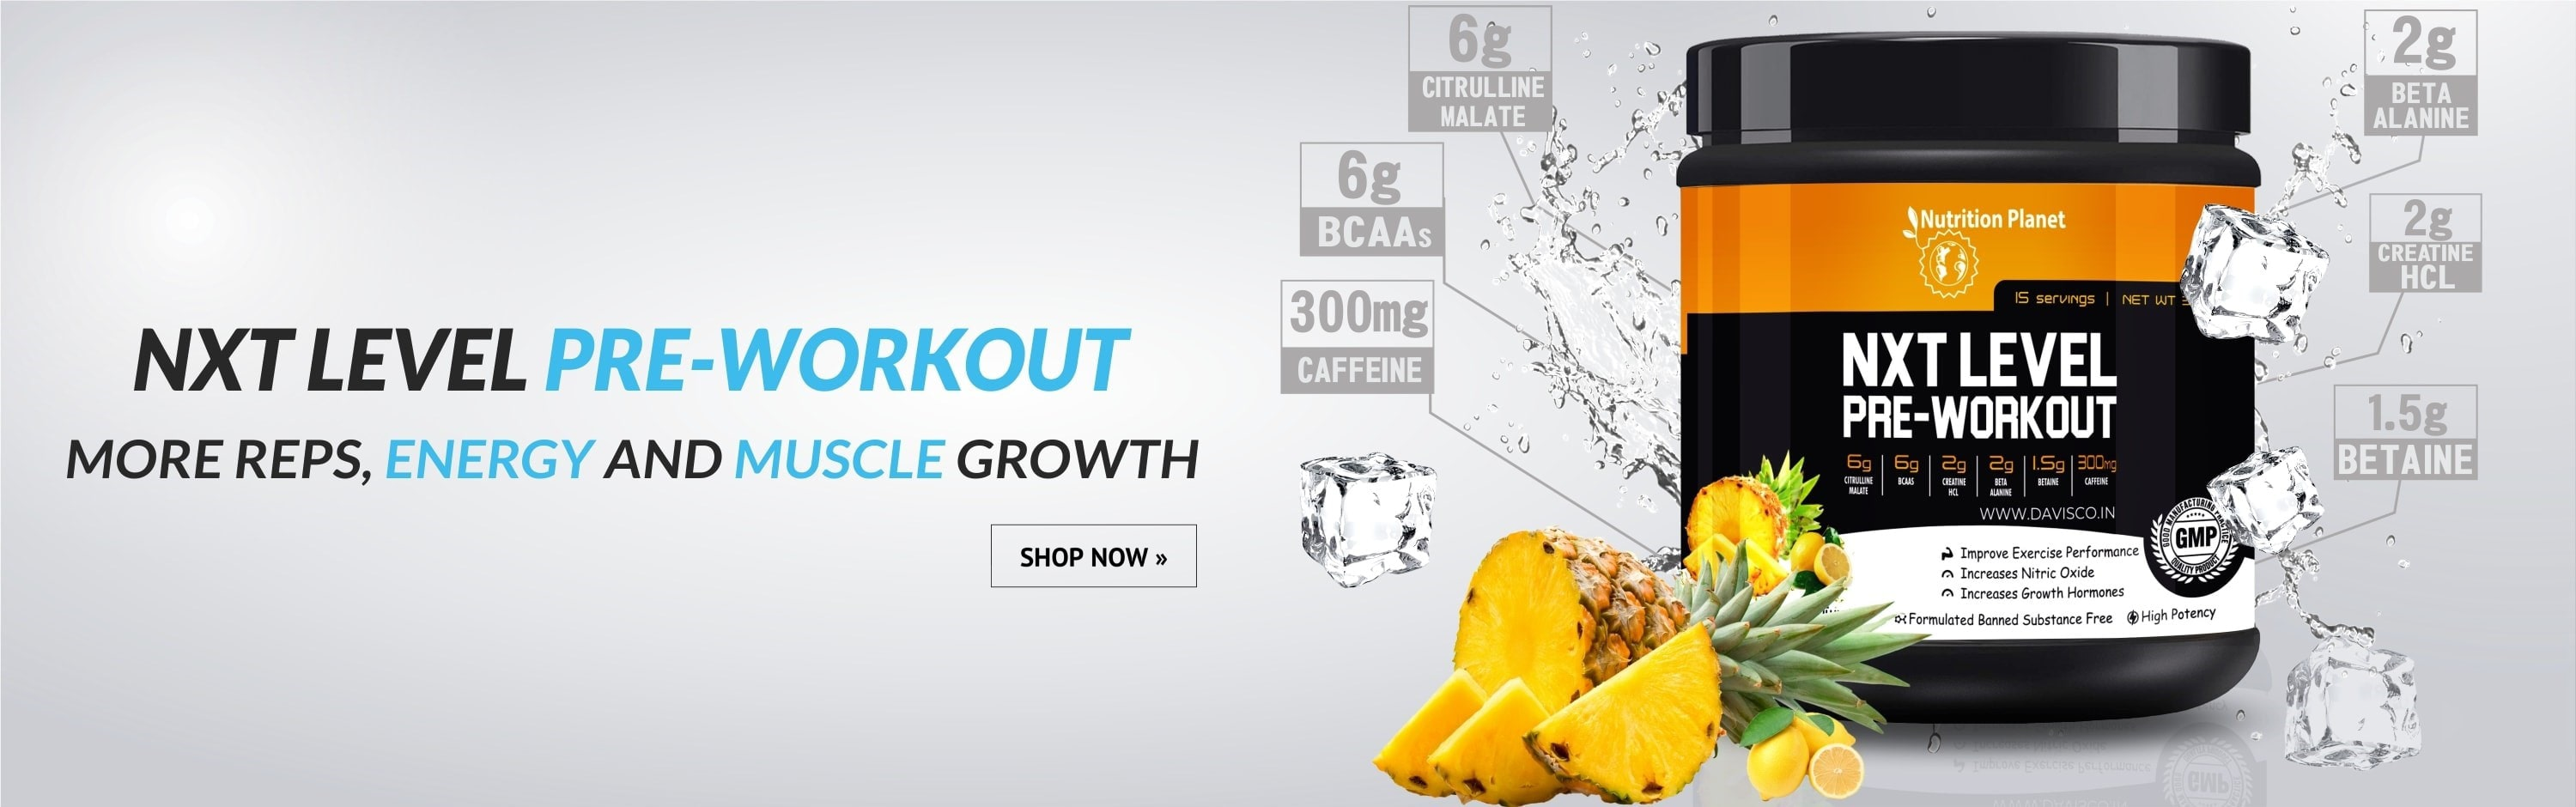 nxt level pre-workout pineapple with lemon twist